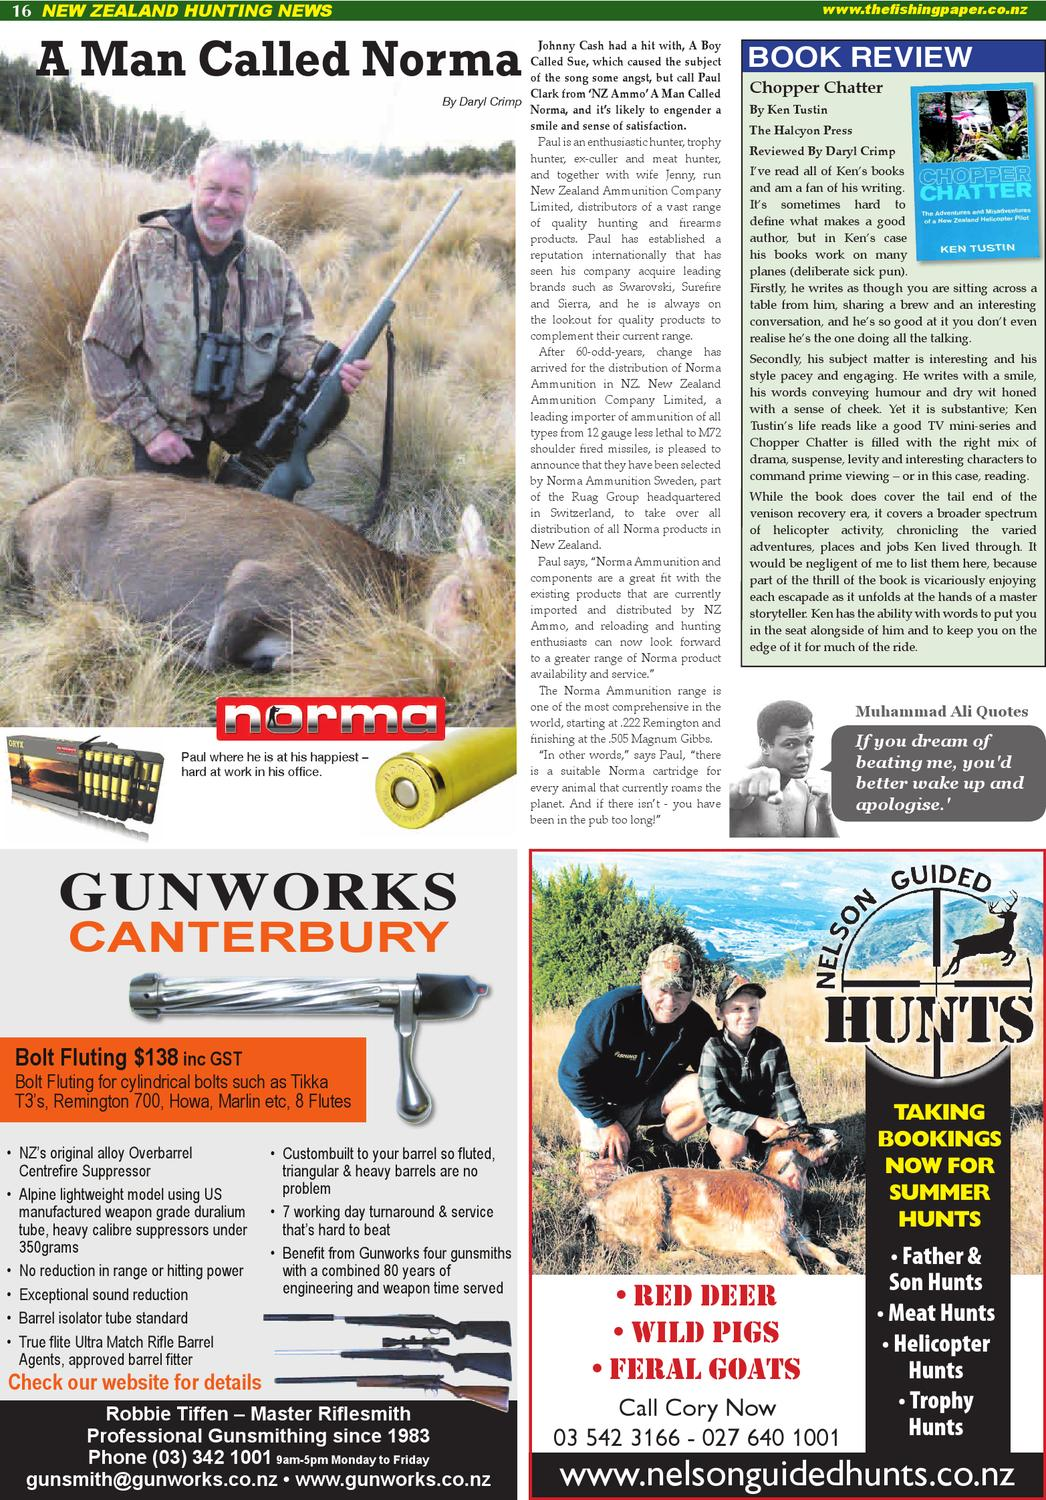 Issue 87 The Fishing Paper by The Fishing Paper - issuu